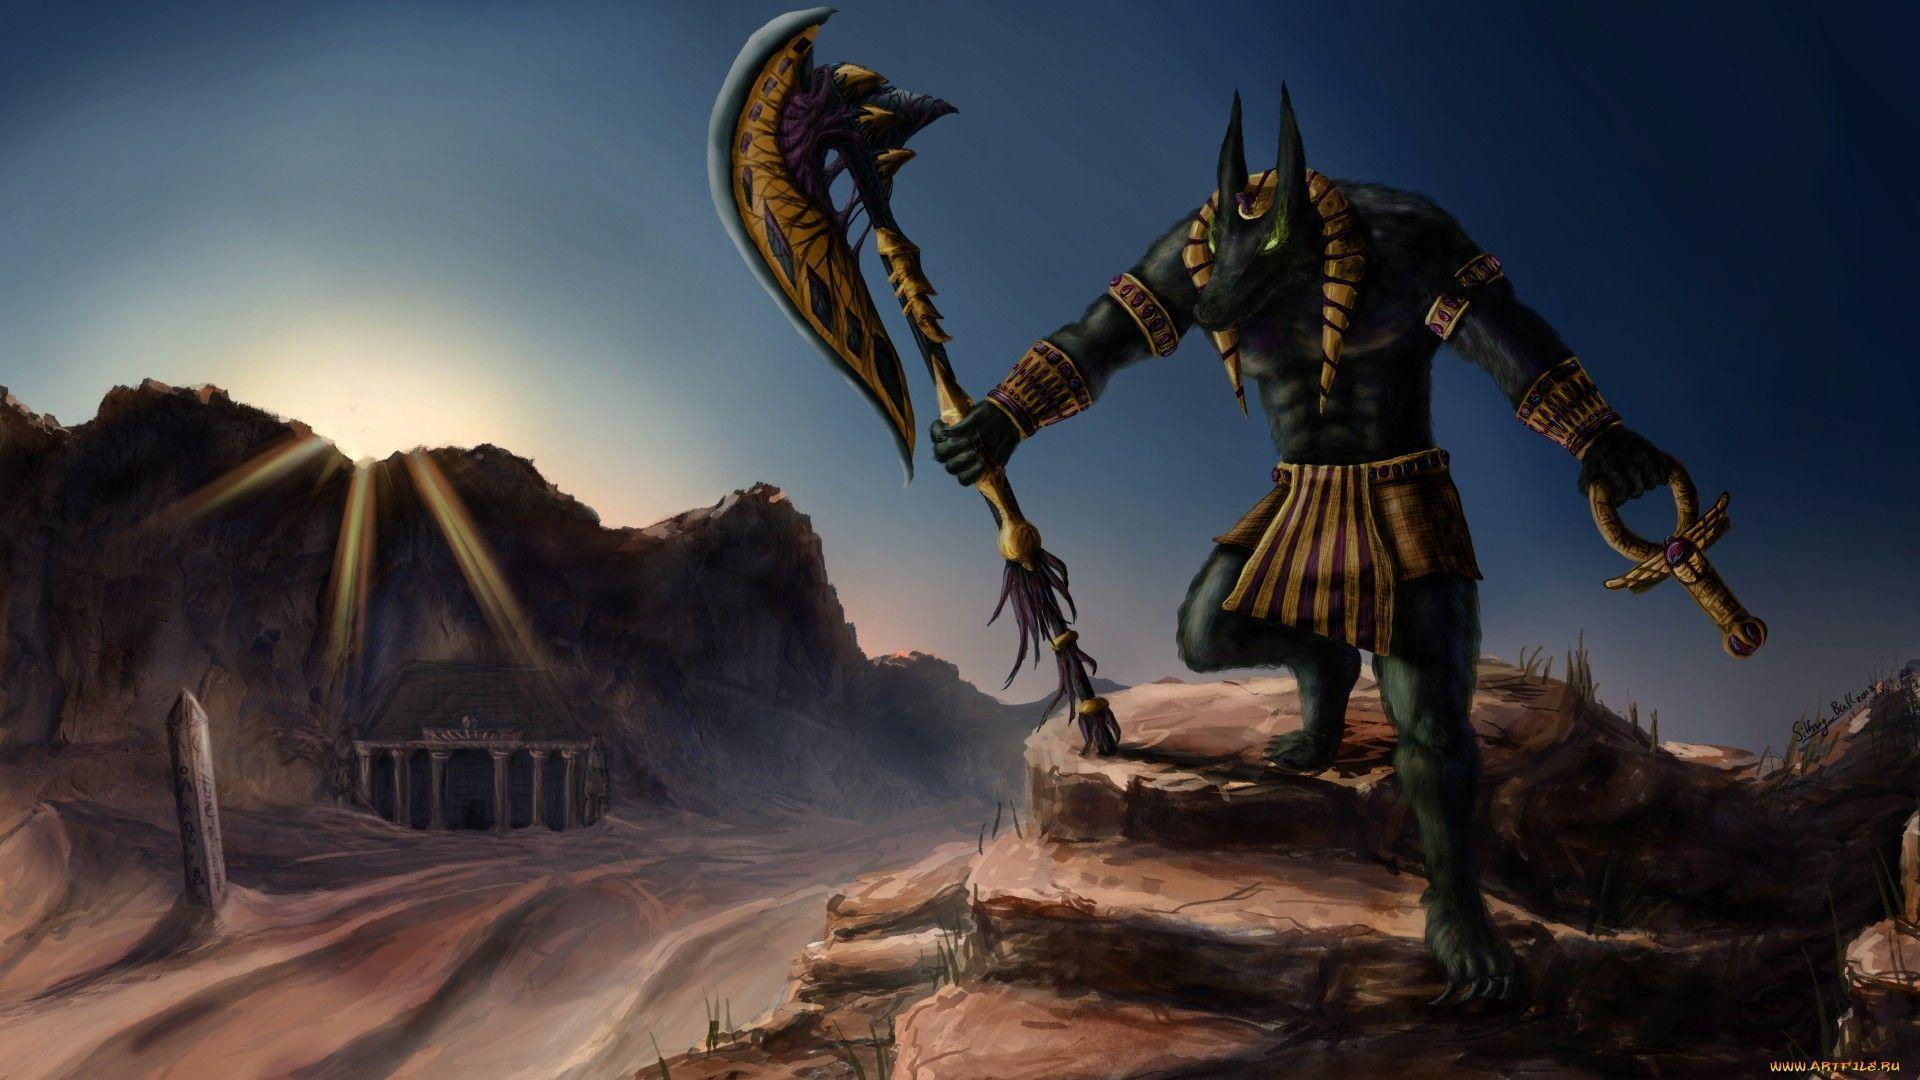 anubis wallpaper for pc - photo #3